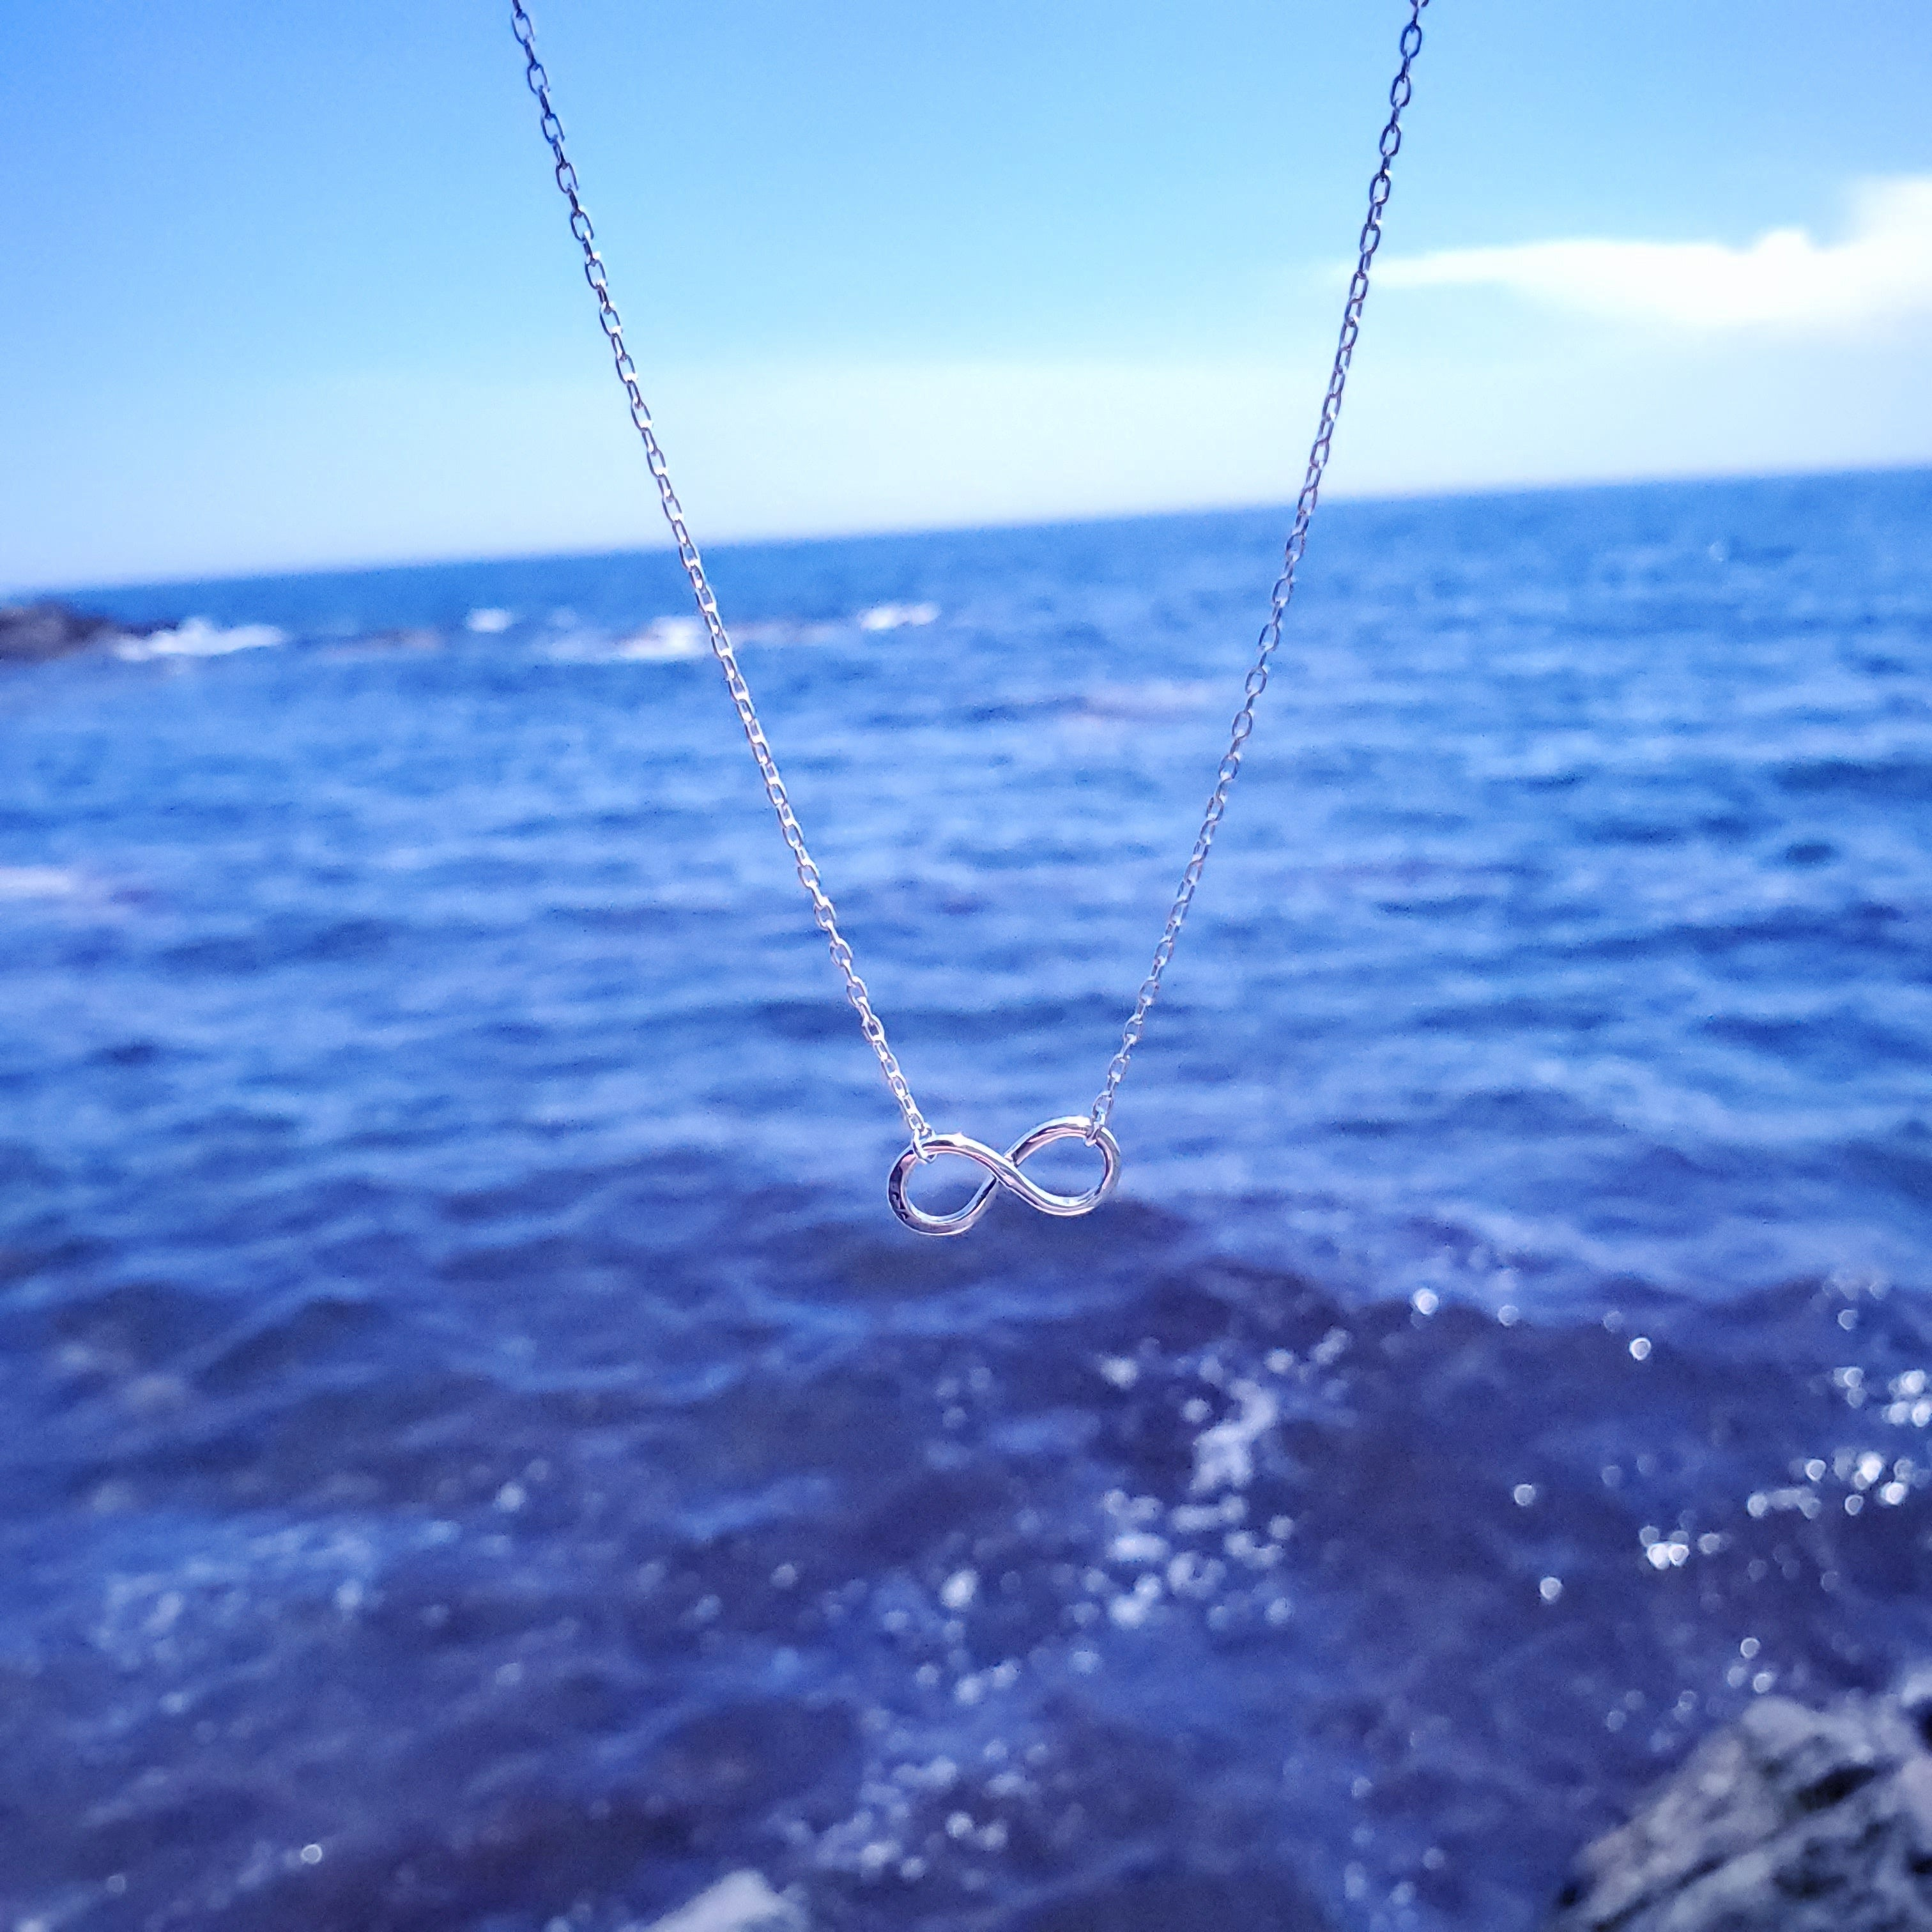 Silver infinity necklace hanging with ocean in background